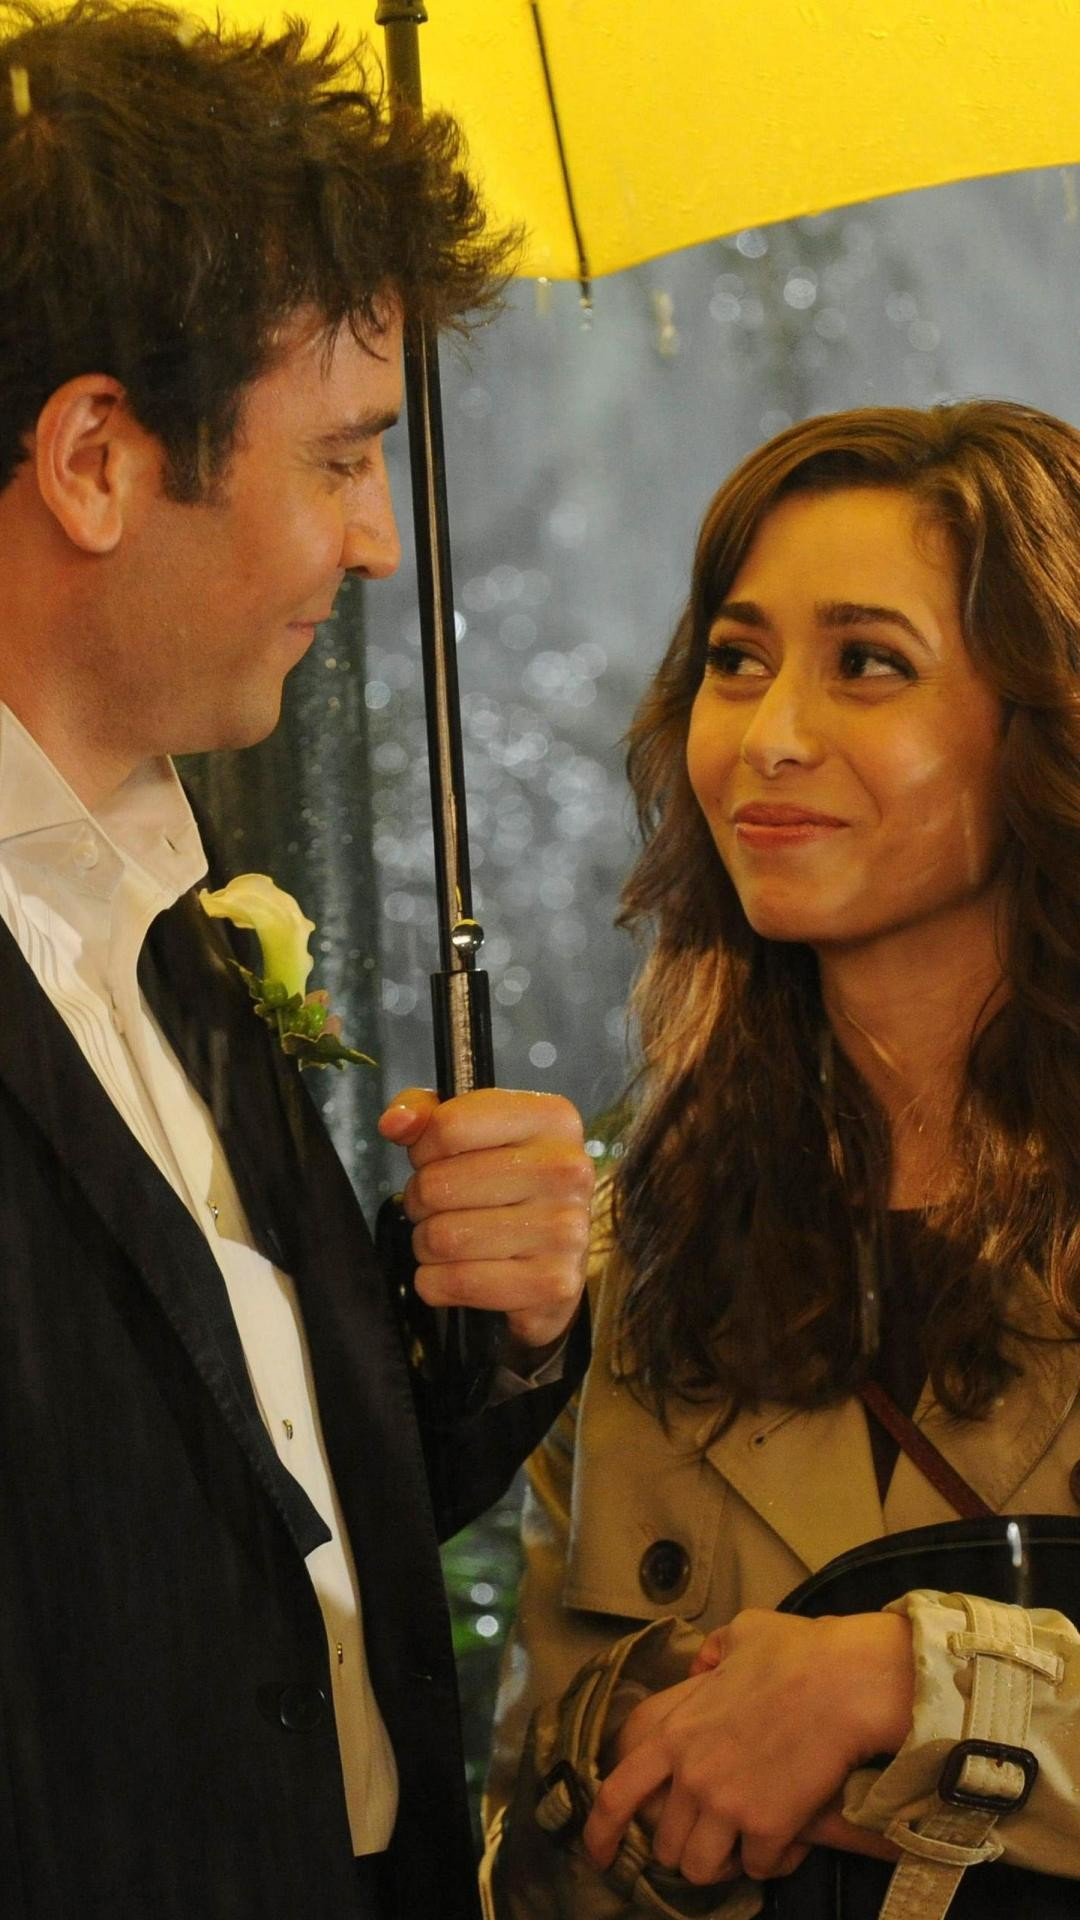 Himym Wallpaper 70 Pictures